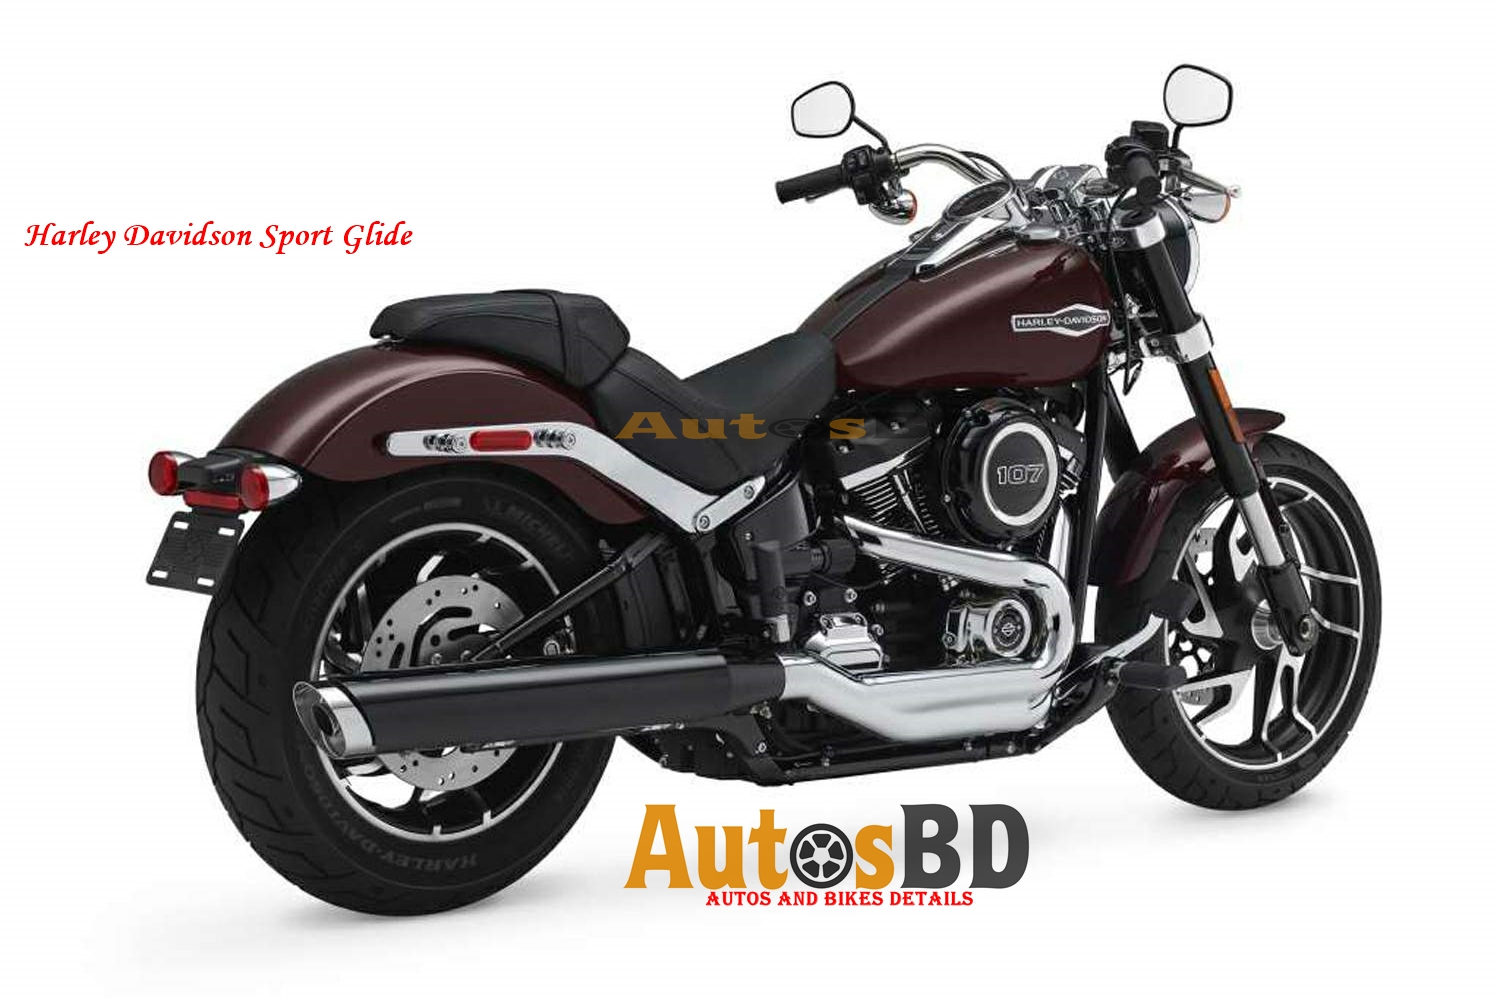 Harley Davidson Sport Glide Price in India